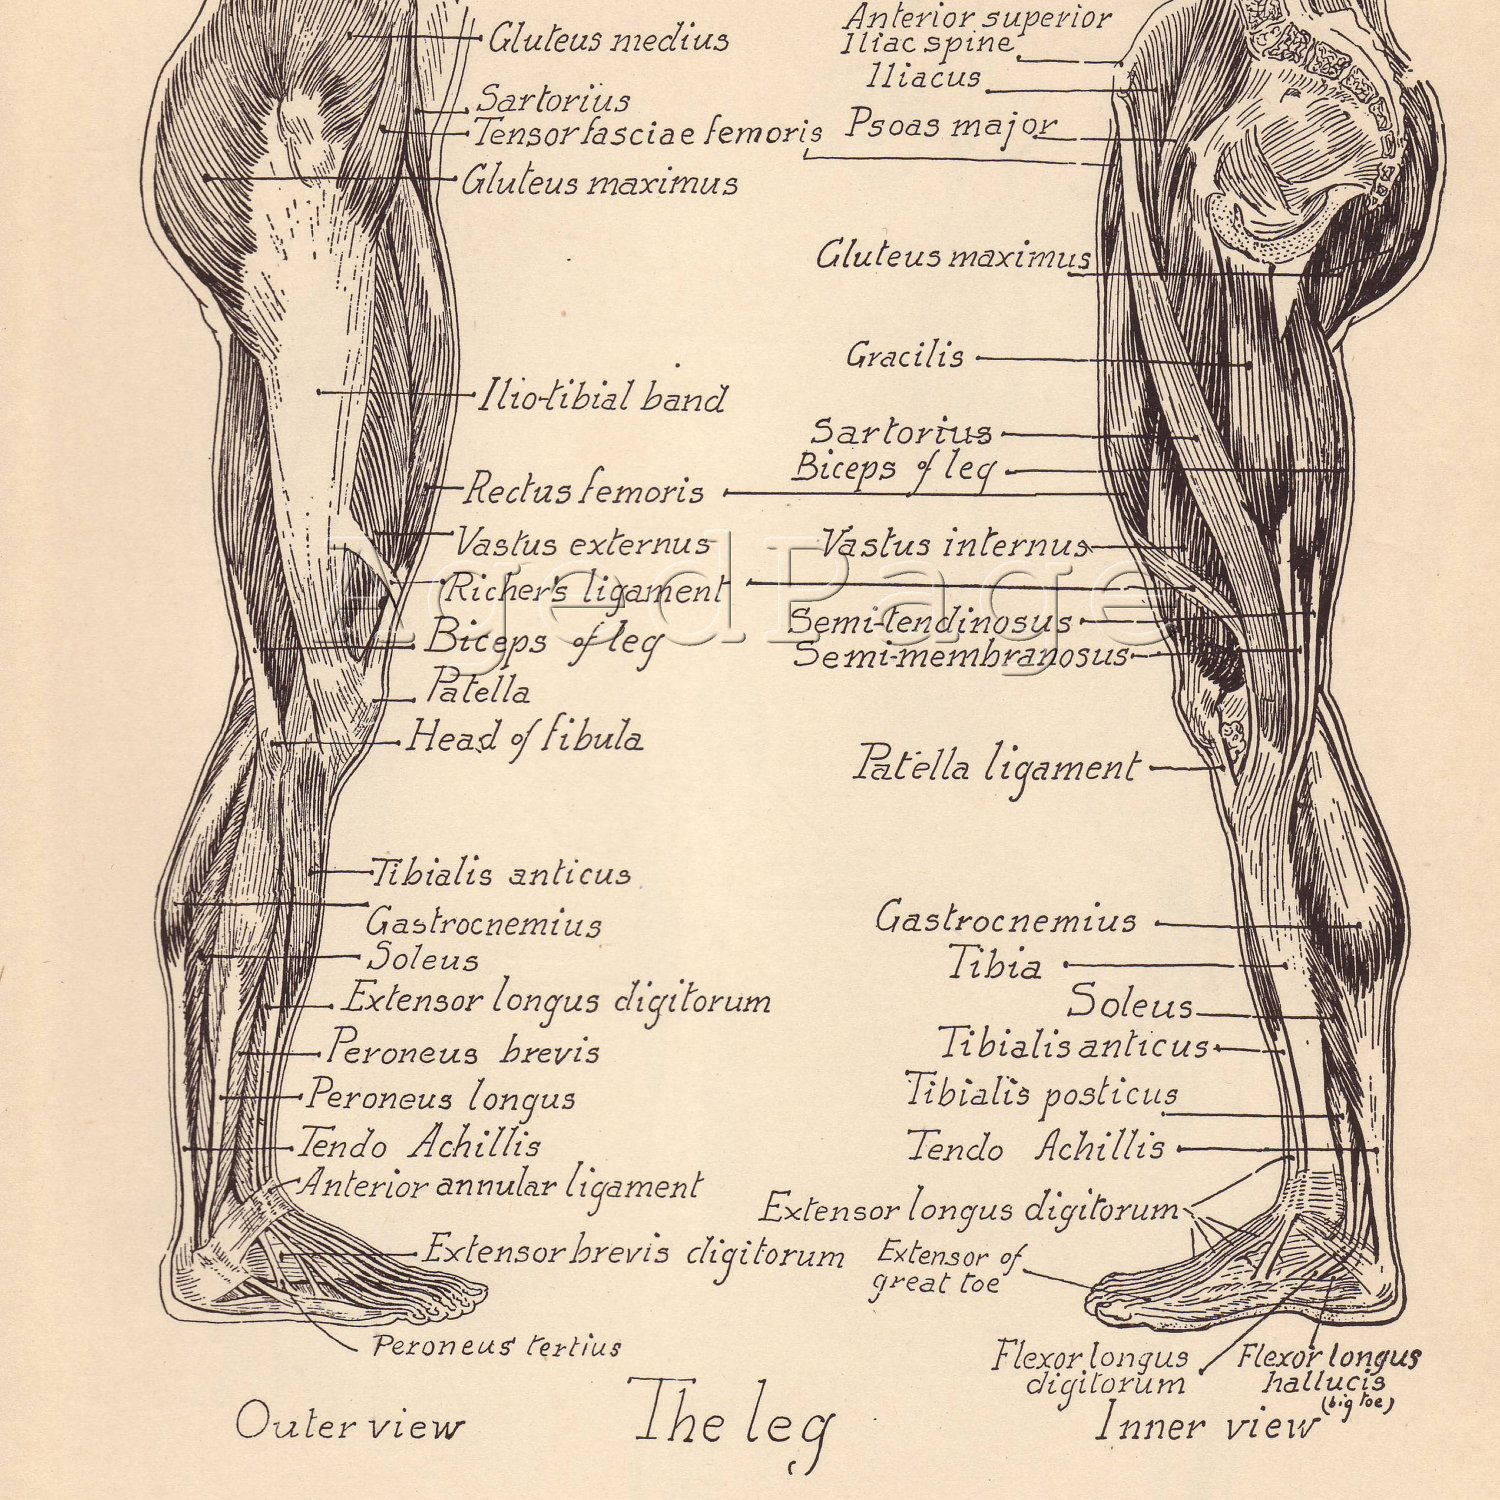 vintage anatomy | Massage | Pinterest | Anatomy, Vintage and Human ...